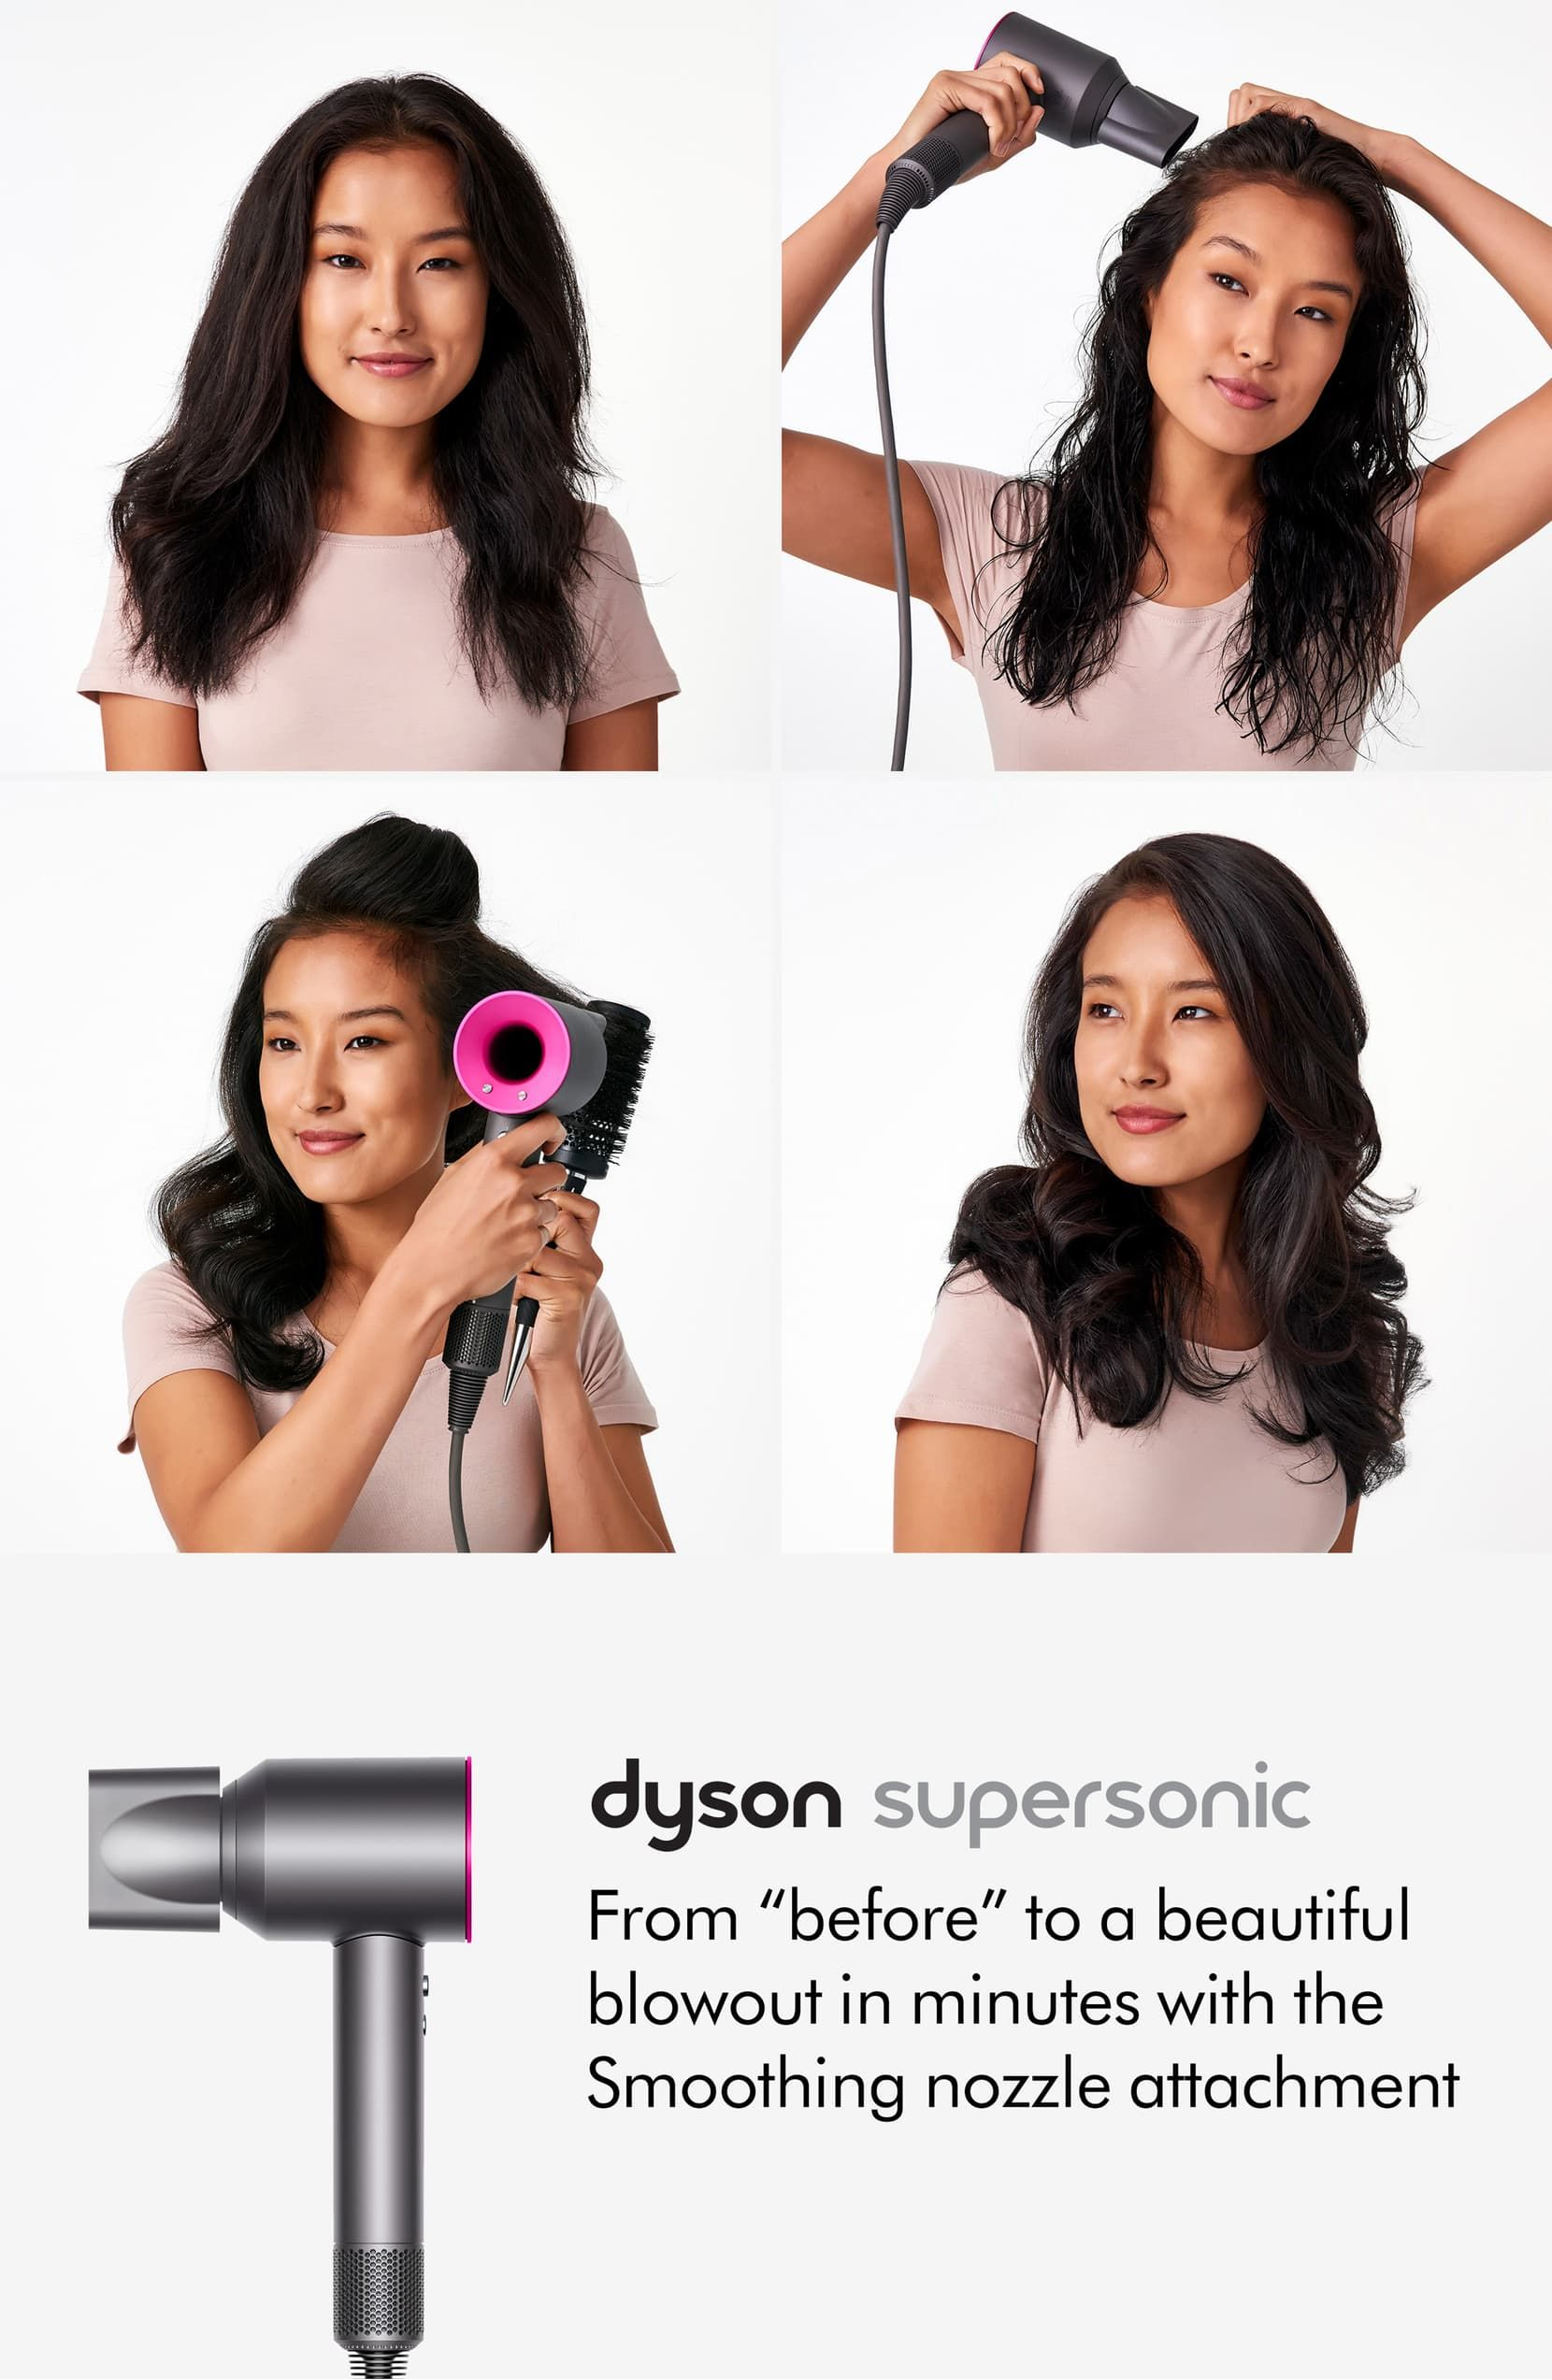 Supersonic Hair Dryer Dyson In 2020 Damp Hair Styles Hair Styles Natural Hair Styles